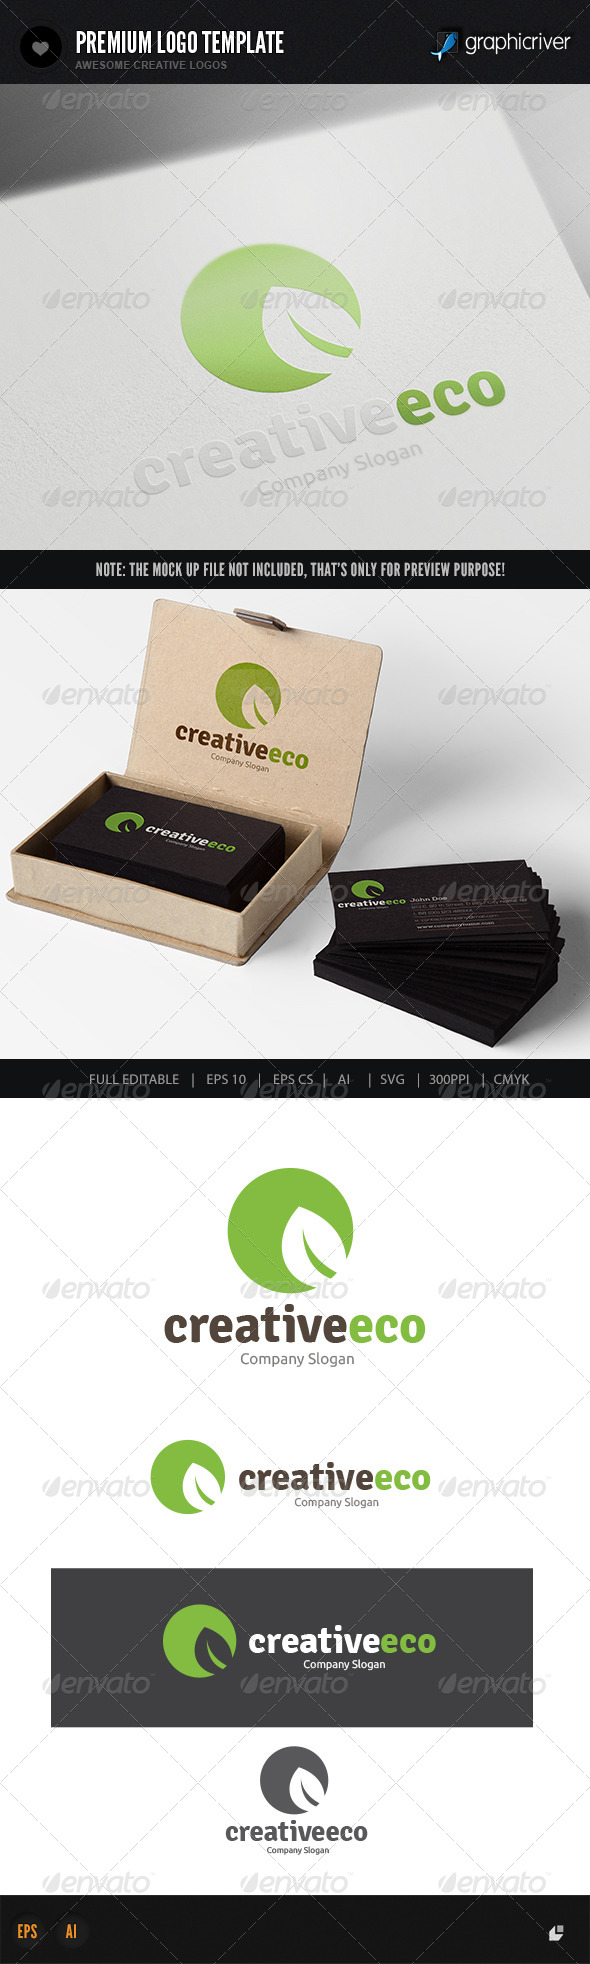 GraphicRiver Eco Creative 8181875